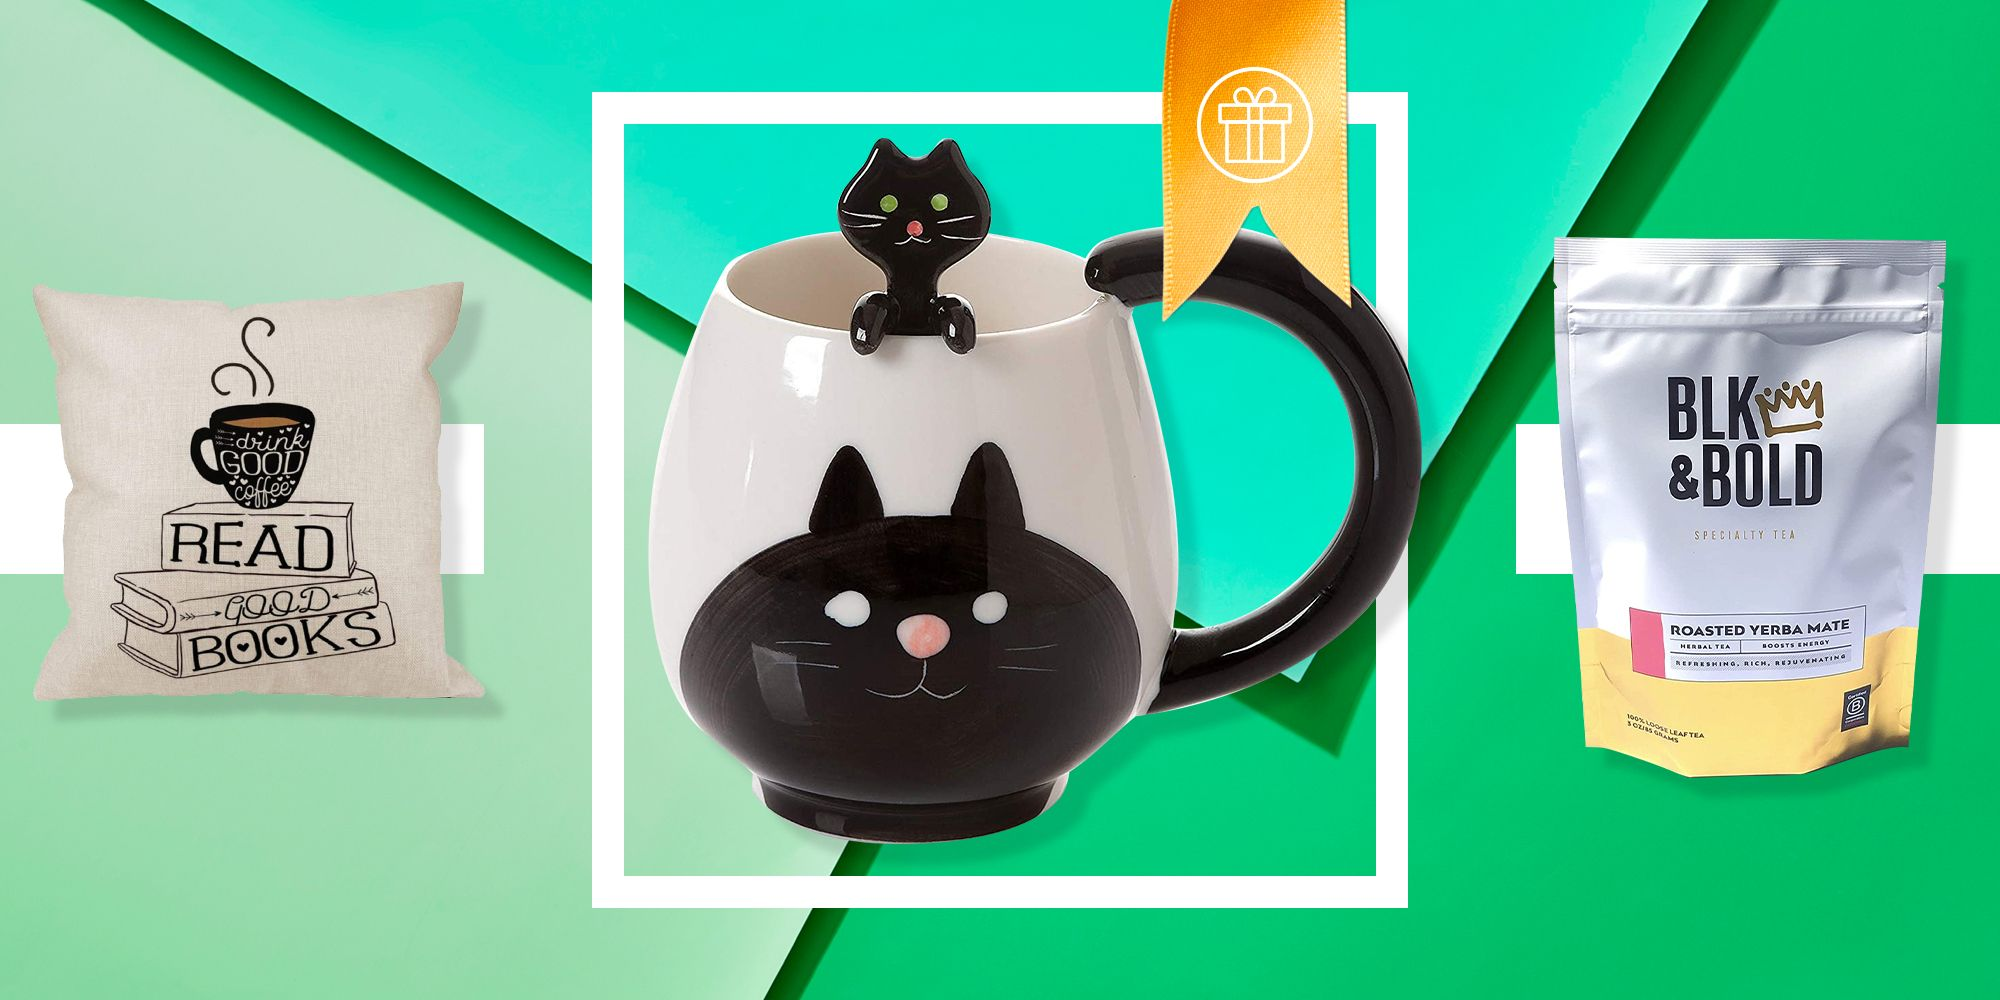 45 Best Gifts For Coffee Lovers 2020 Top Coffee Gifts